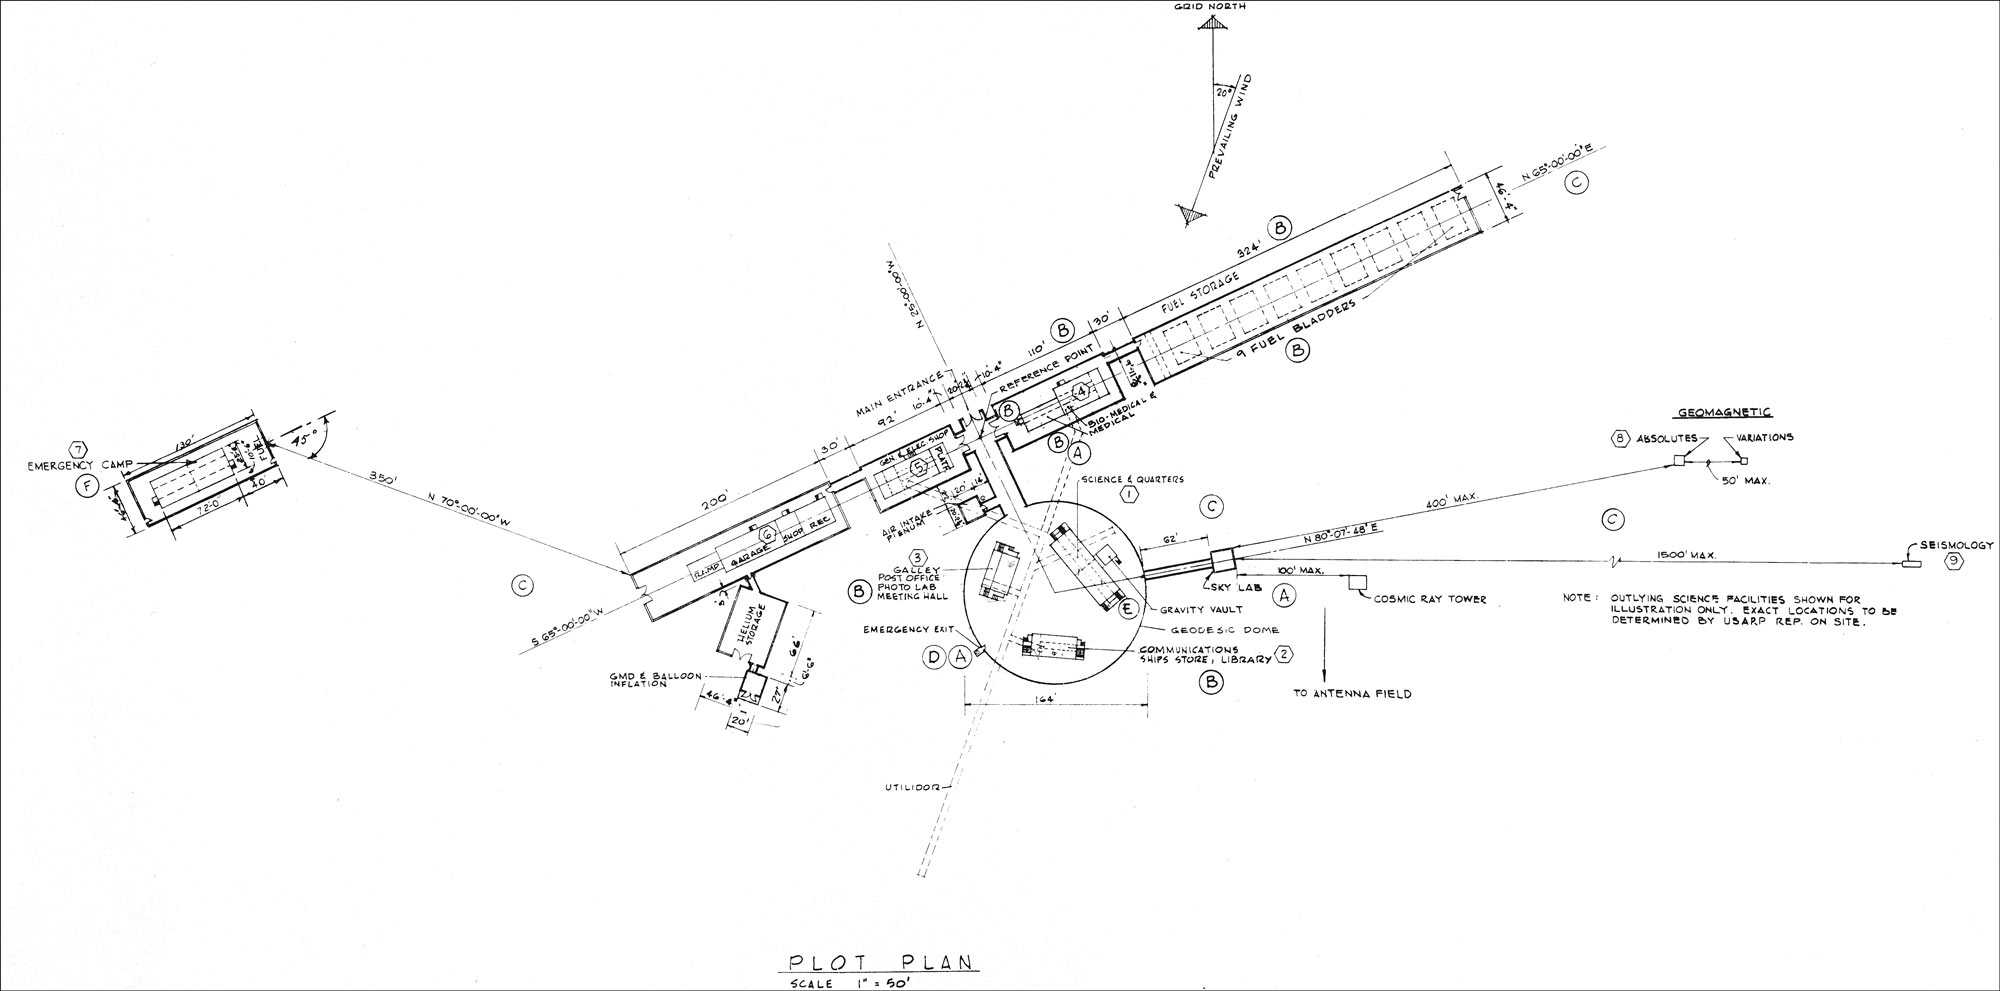 South Pole Aerial Views And Site Plans 83